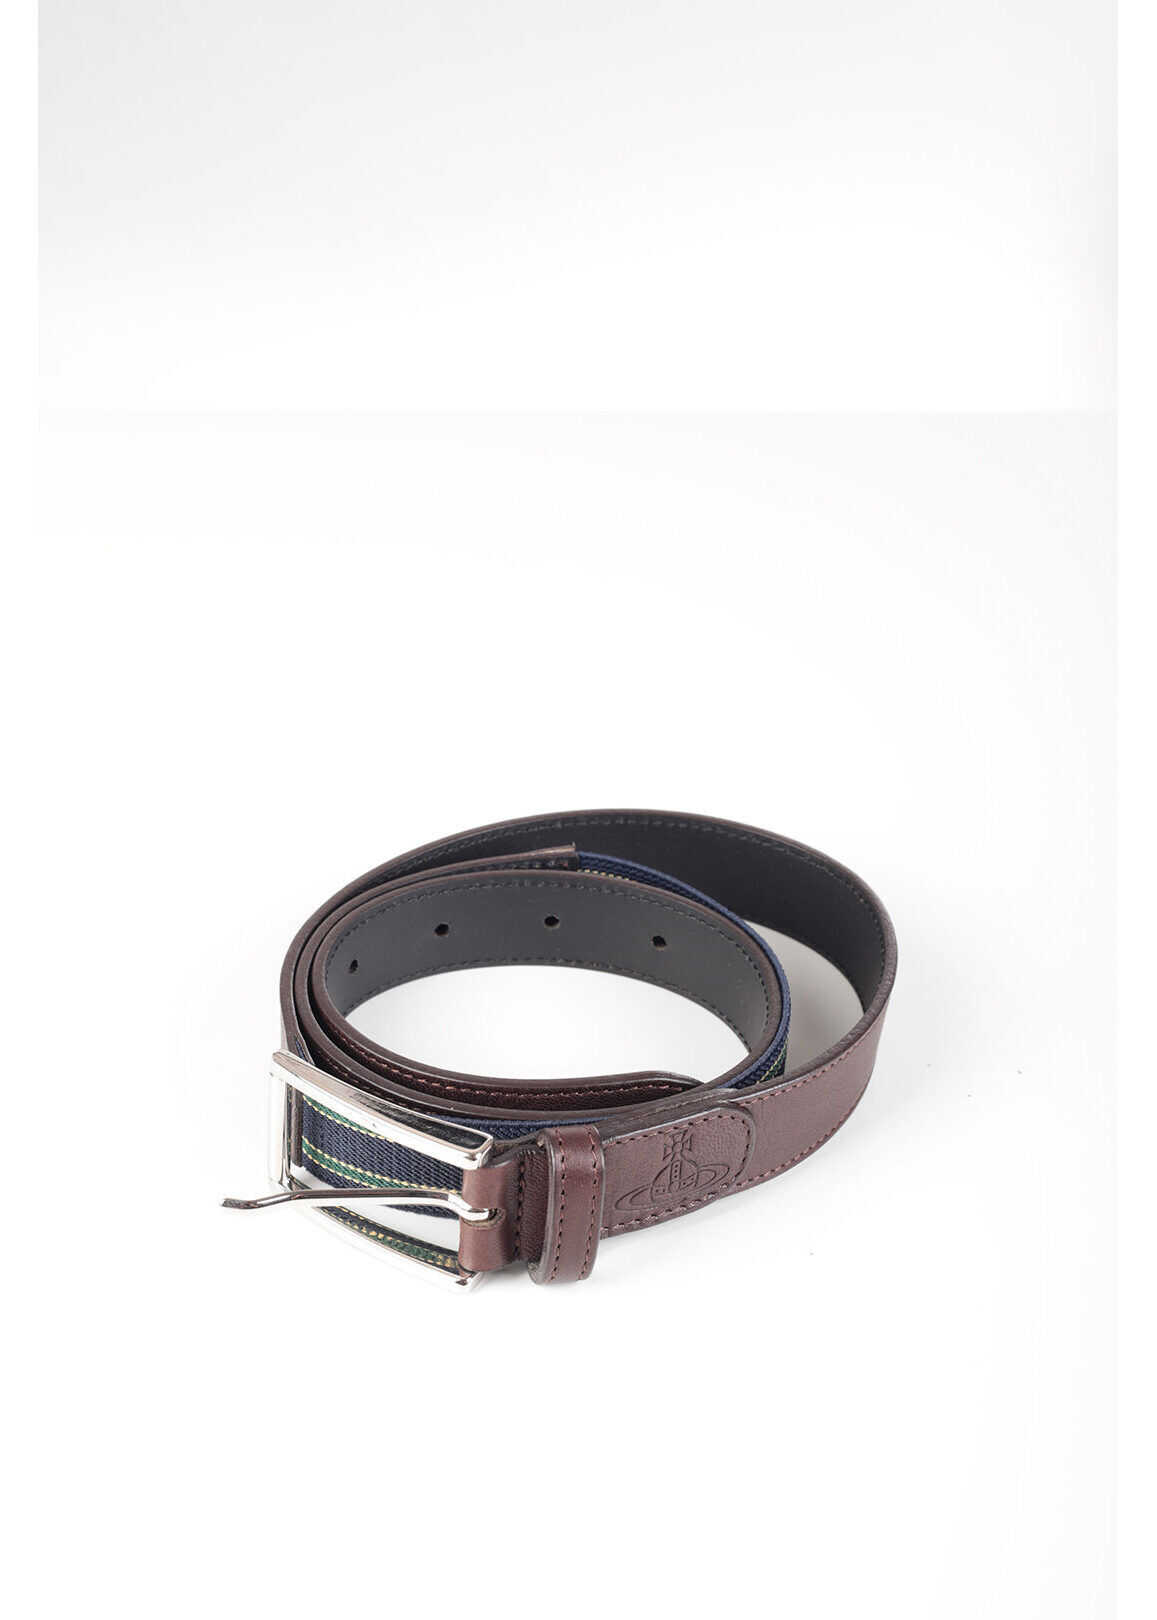 Vivienne Westwood Leather Belt with Stretchy Insert 25mm BROWN